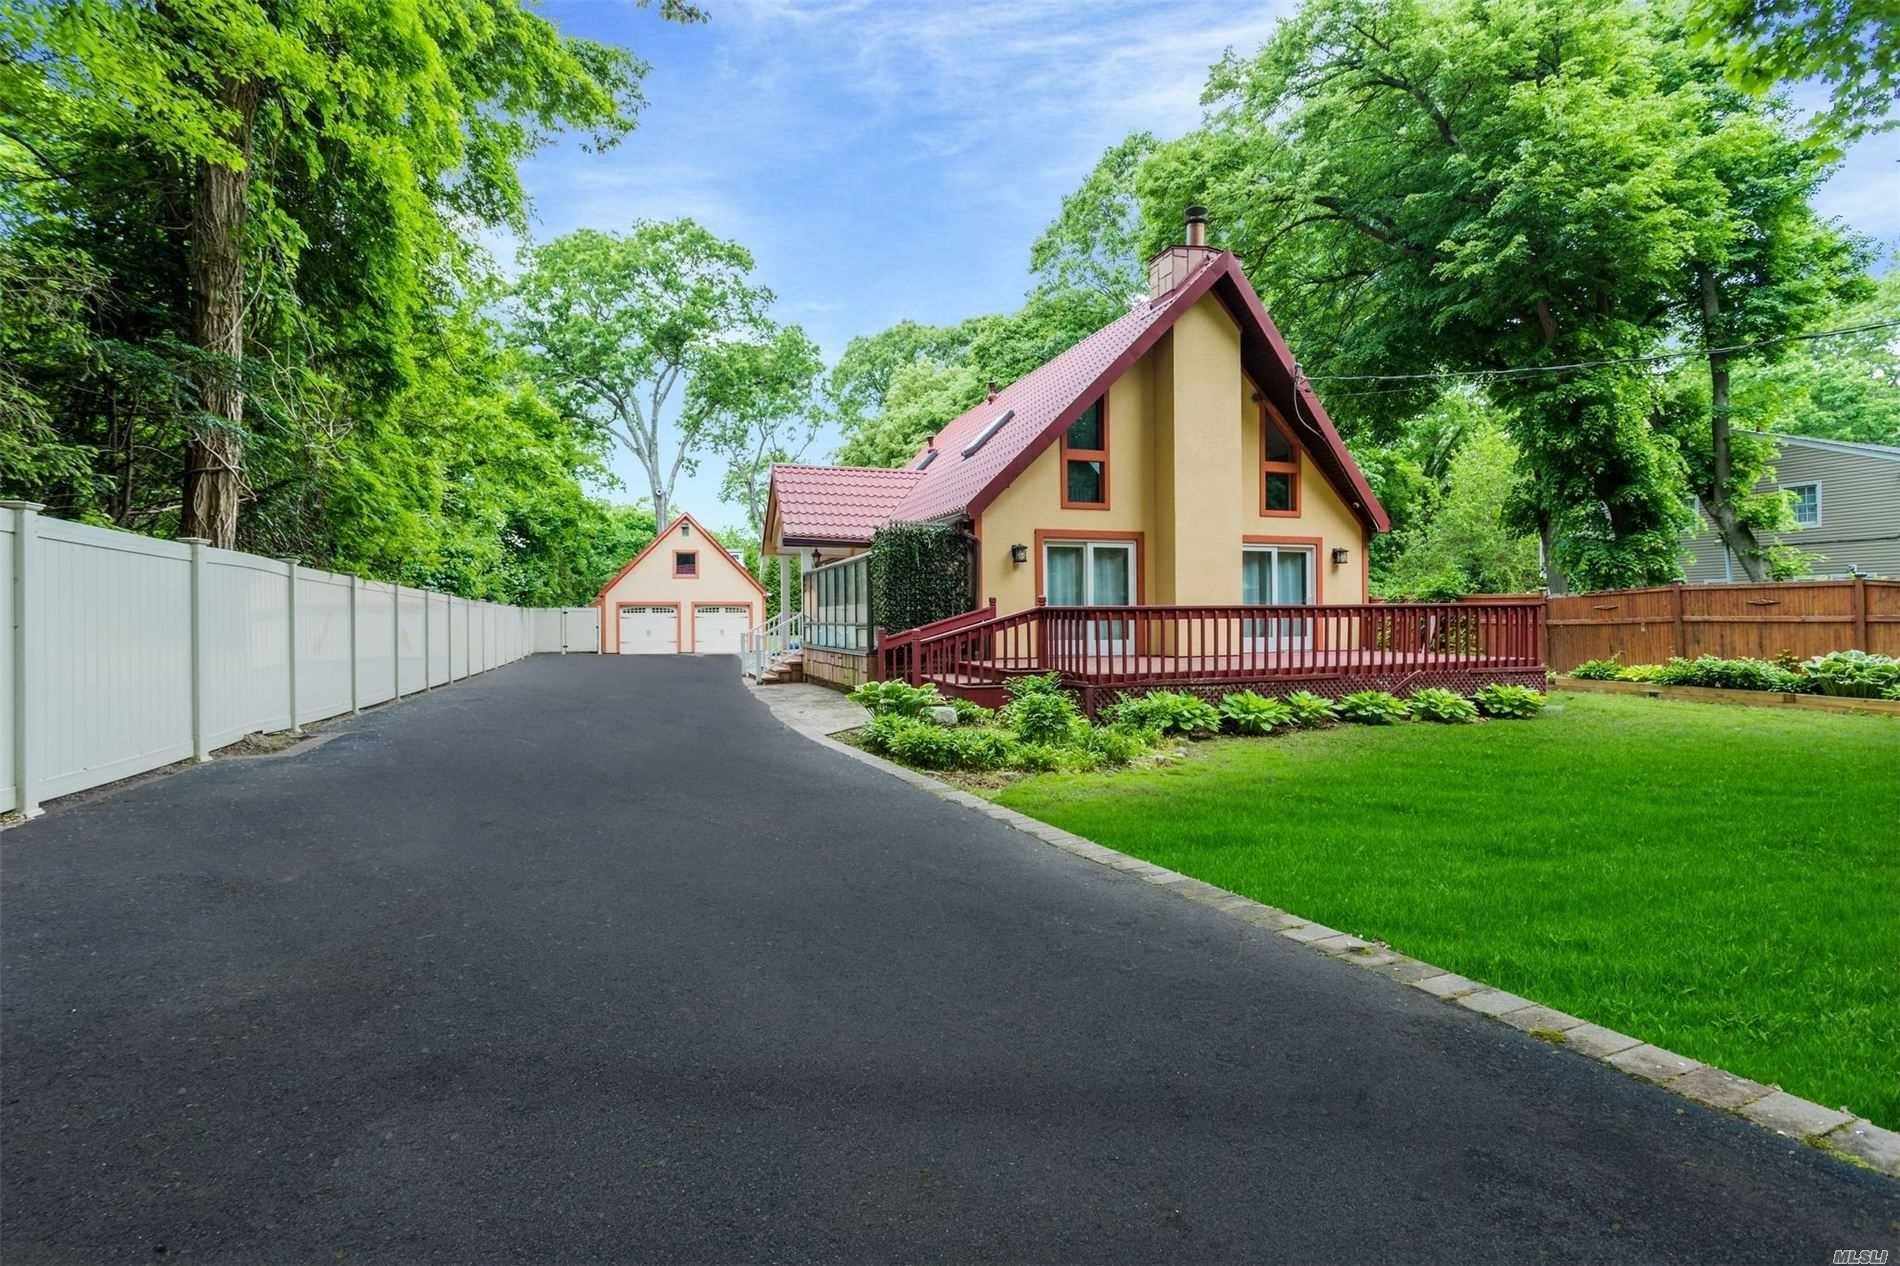 25A Hartman Hill Road, Huntington, NY 11743 - MLS#: 3219931